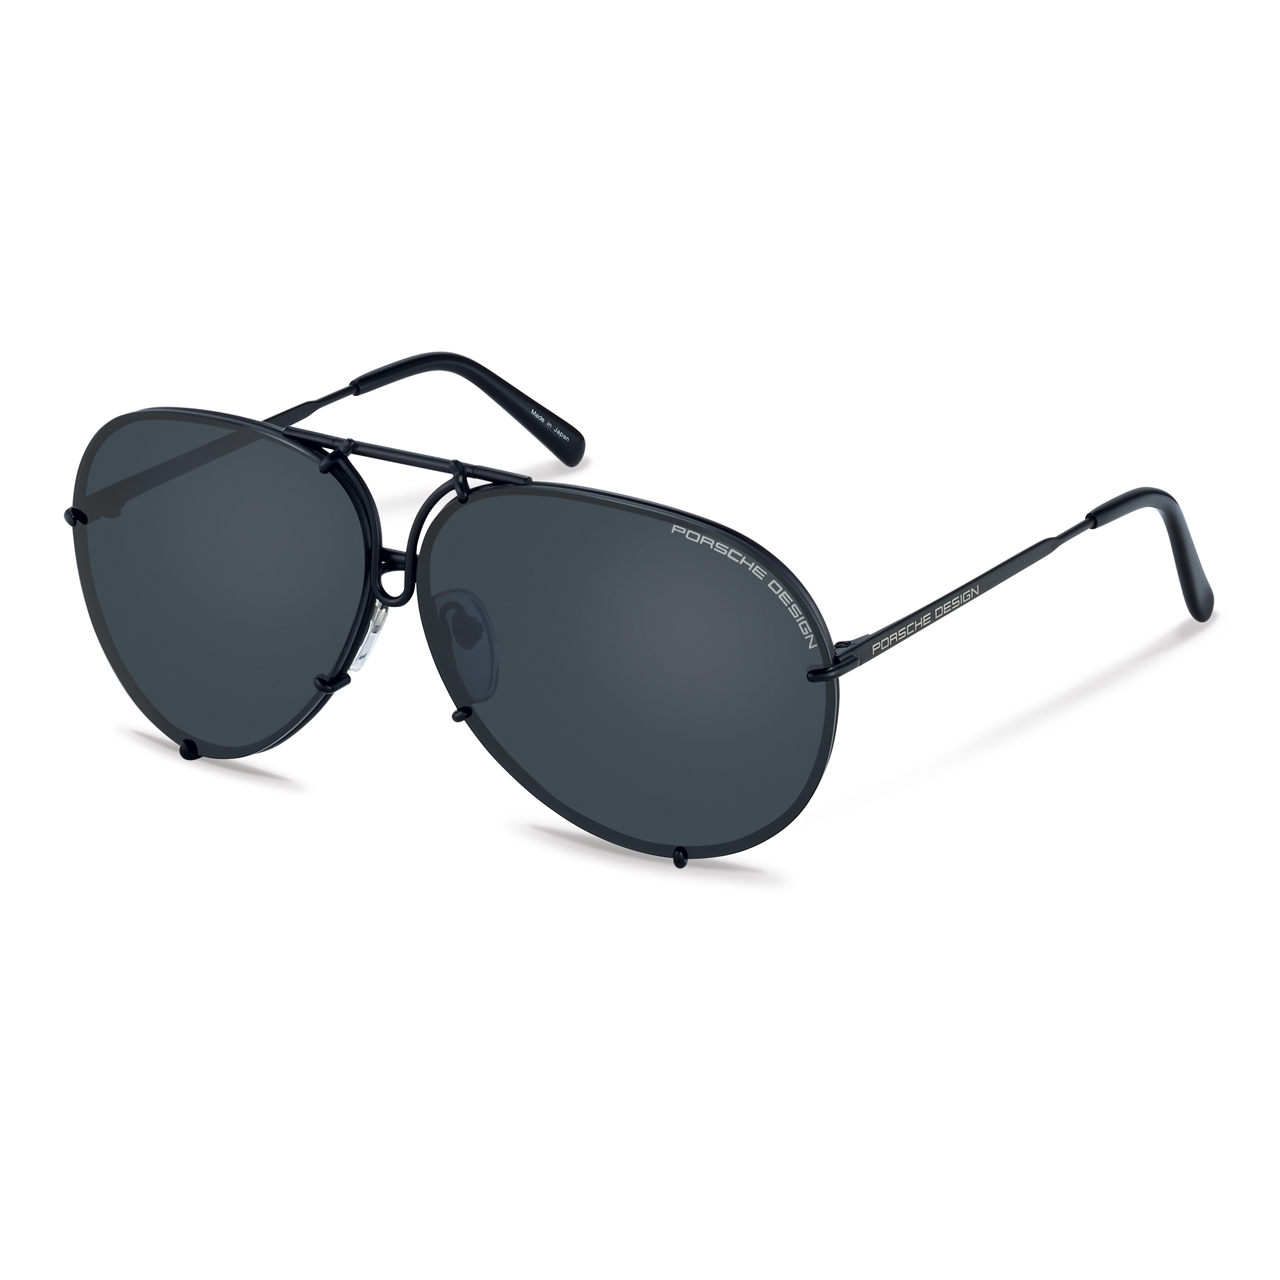 8478 D - Our most popular black on black stylethe 'Kris Jenner' framewith a silver interchangeable lens